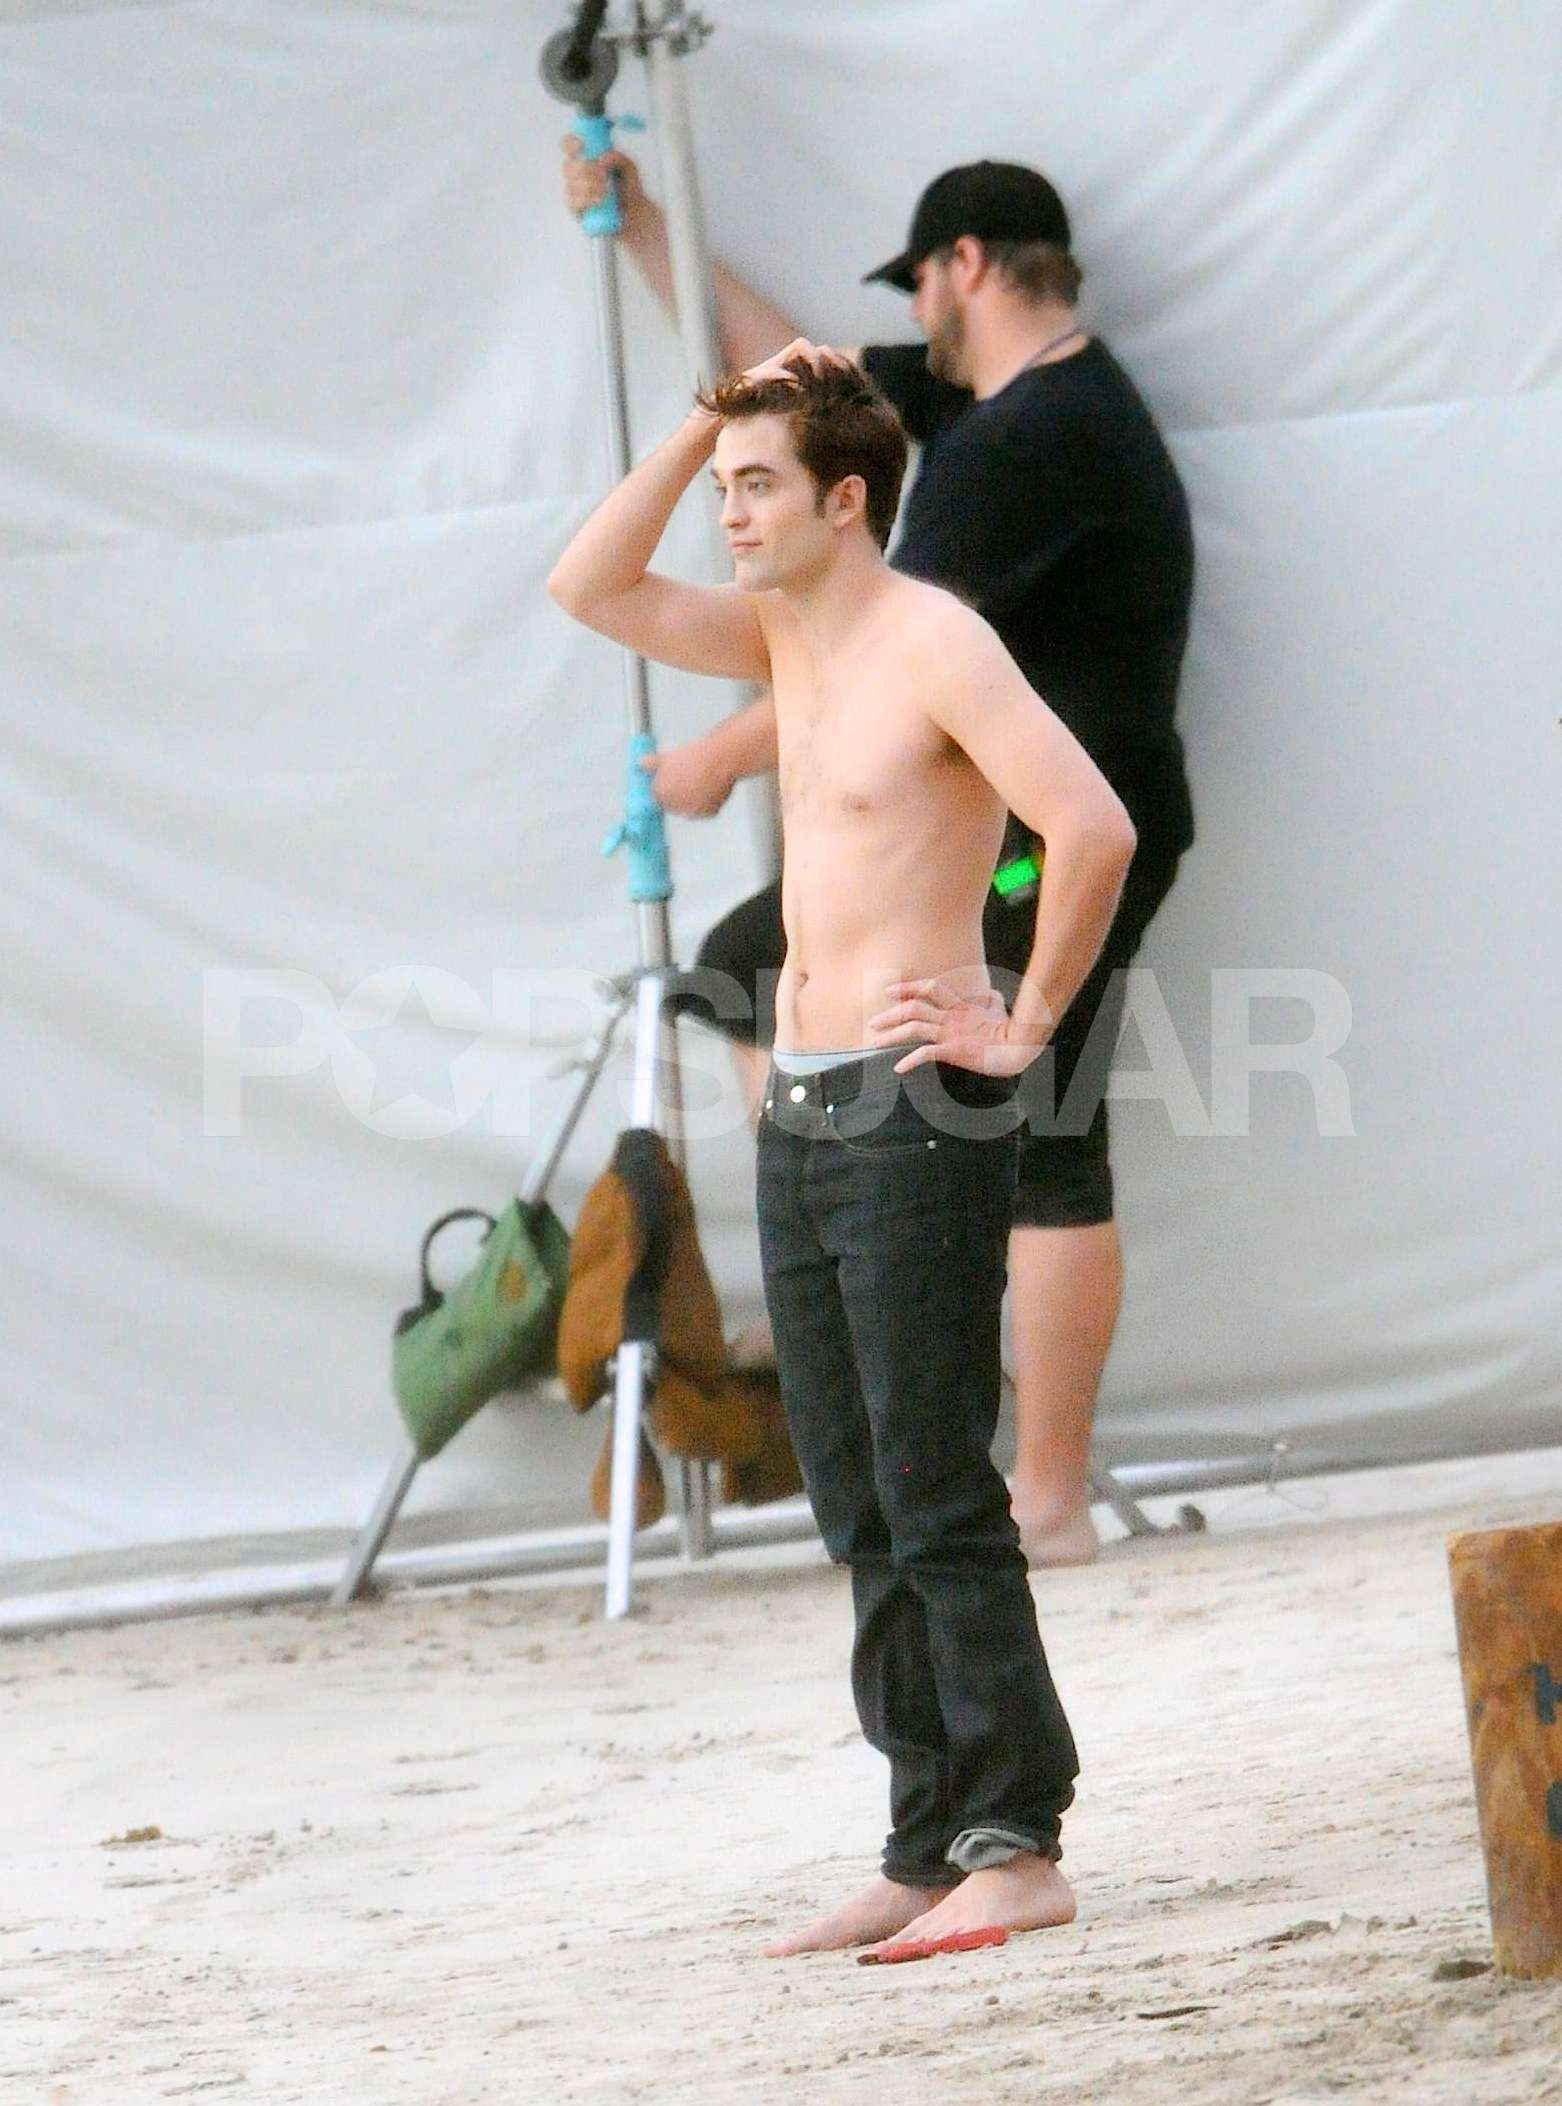 Rob & Kristen Filming Breaking Dawn at St. Thomas [HQ]